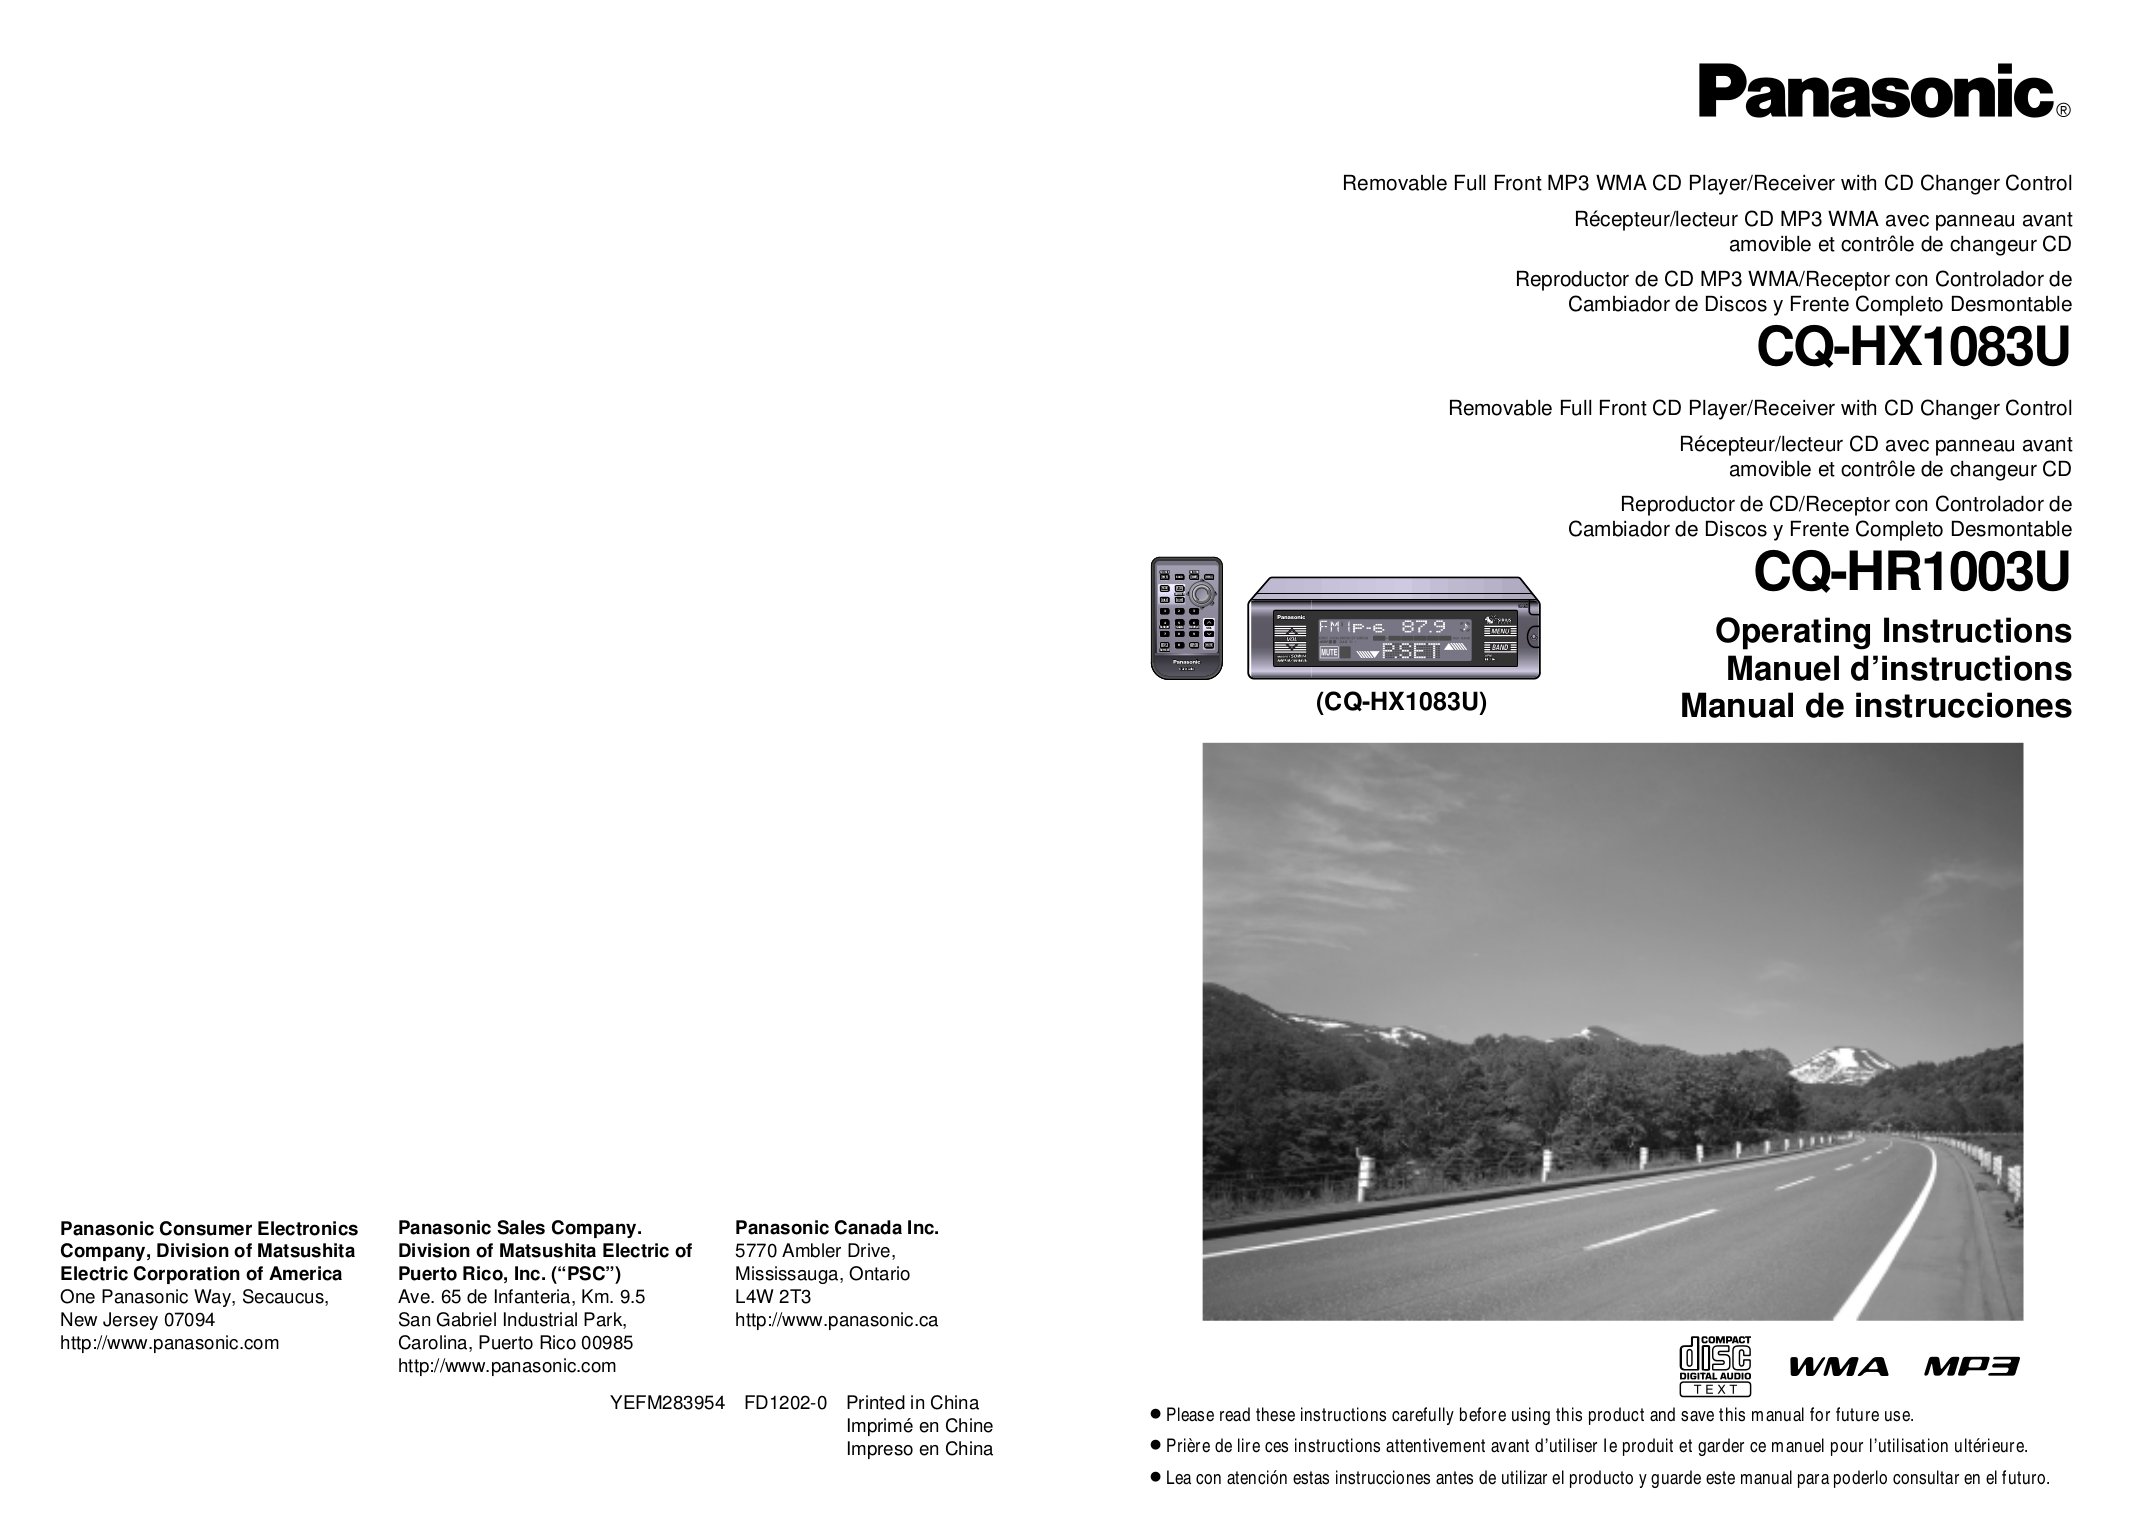 CQHX1083 OIa Eng Fr.pdf 0 download free pdf for panasonic cq hr1003u car receiver manual panasonic cq-hr1003u wiring diagram at crackthecode.co